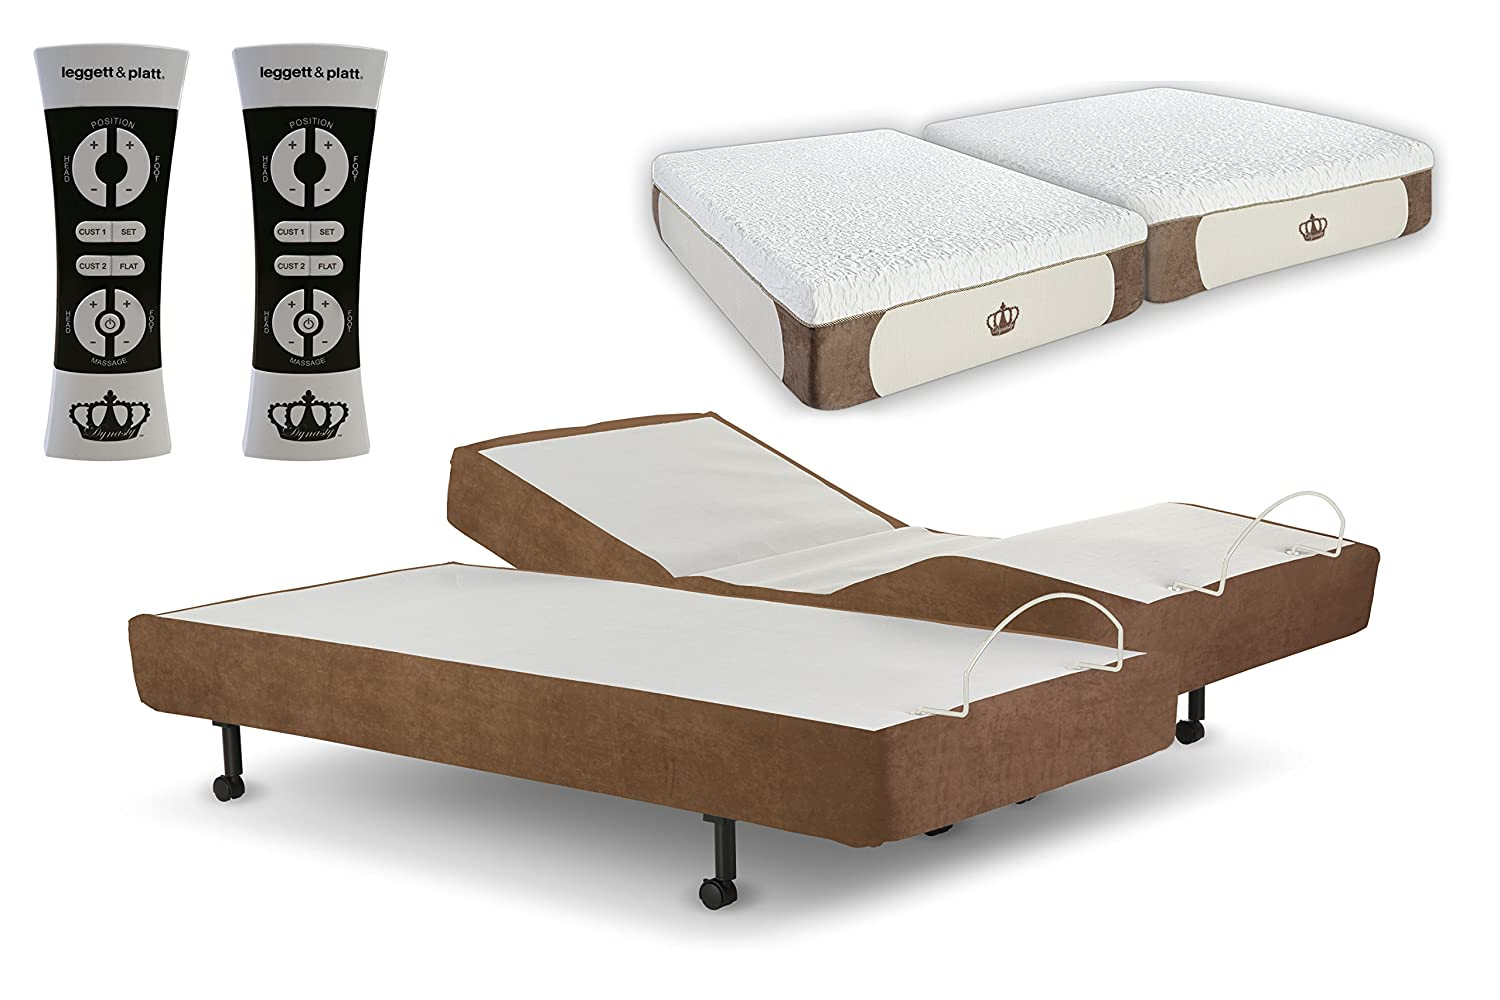 DynastyMattress Split King 14-Inch CoolBreeze GEL Memory Foam Mattress with  S-Cape Adjustable